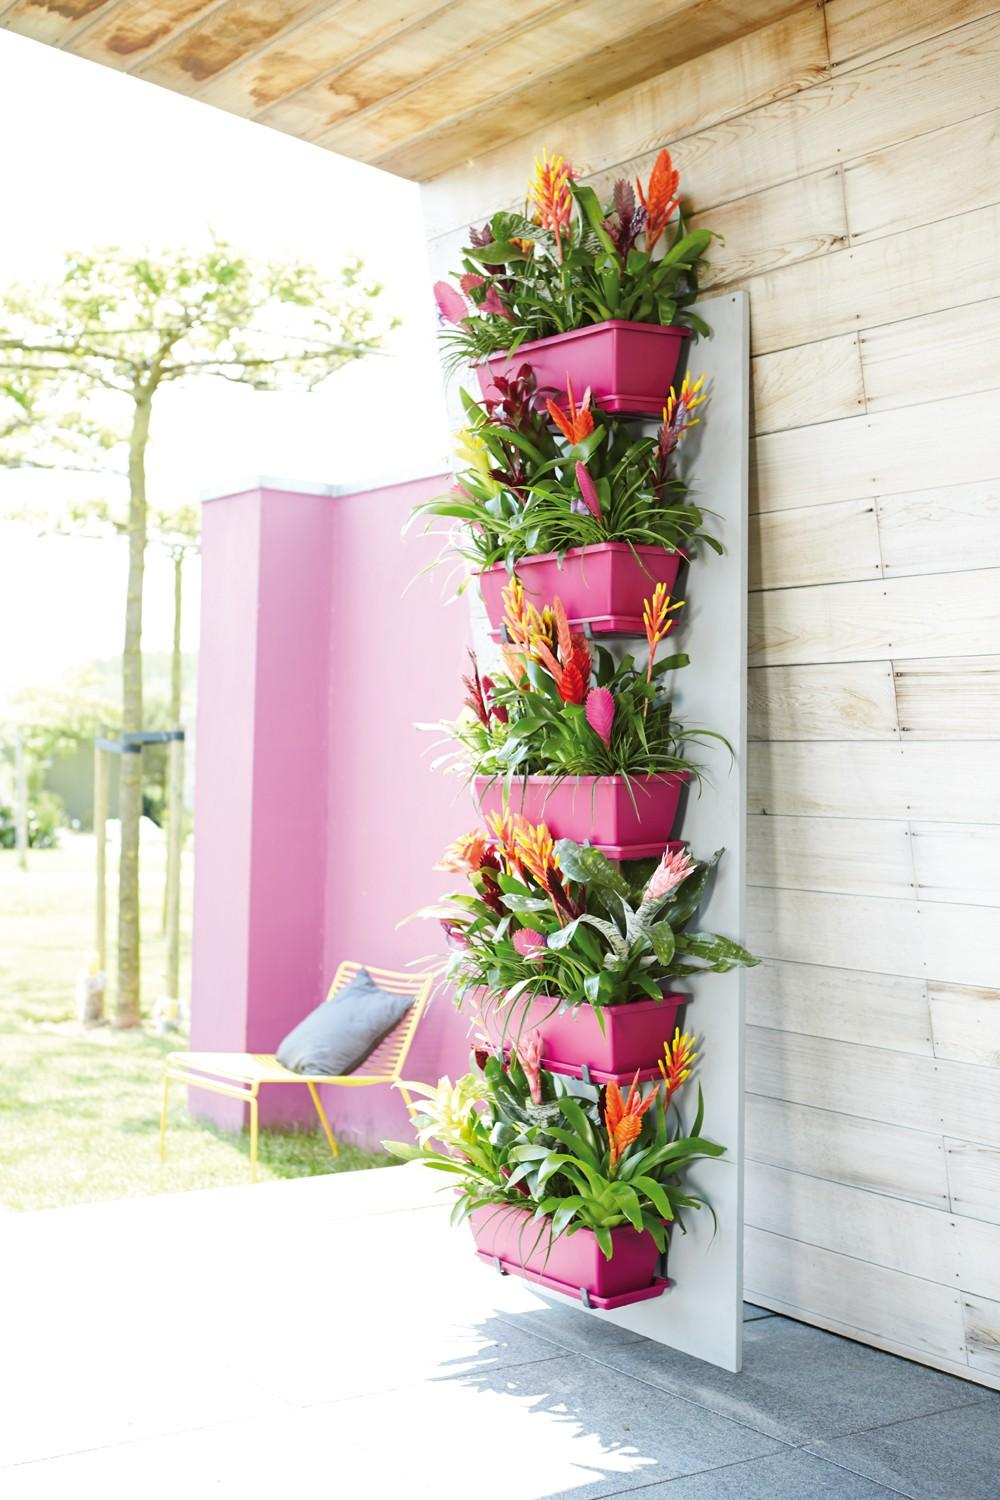 Bright Pink Adds a Pop of Color and Accents Vibrant Bromeliads